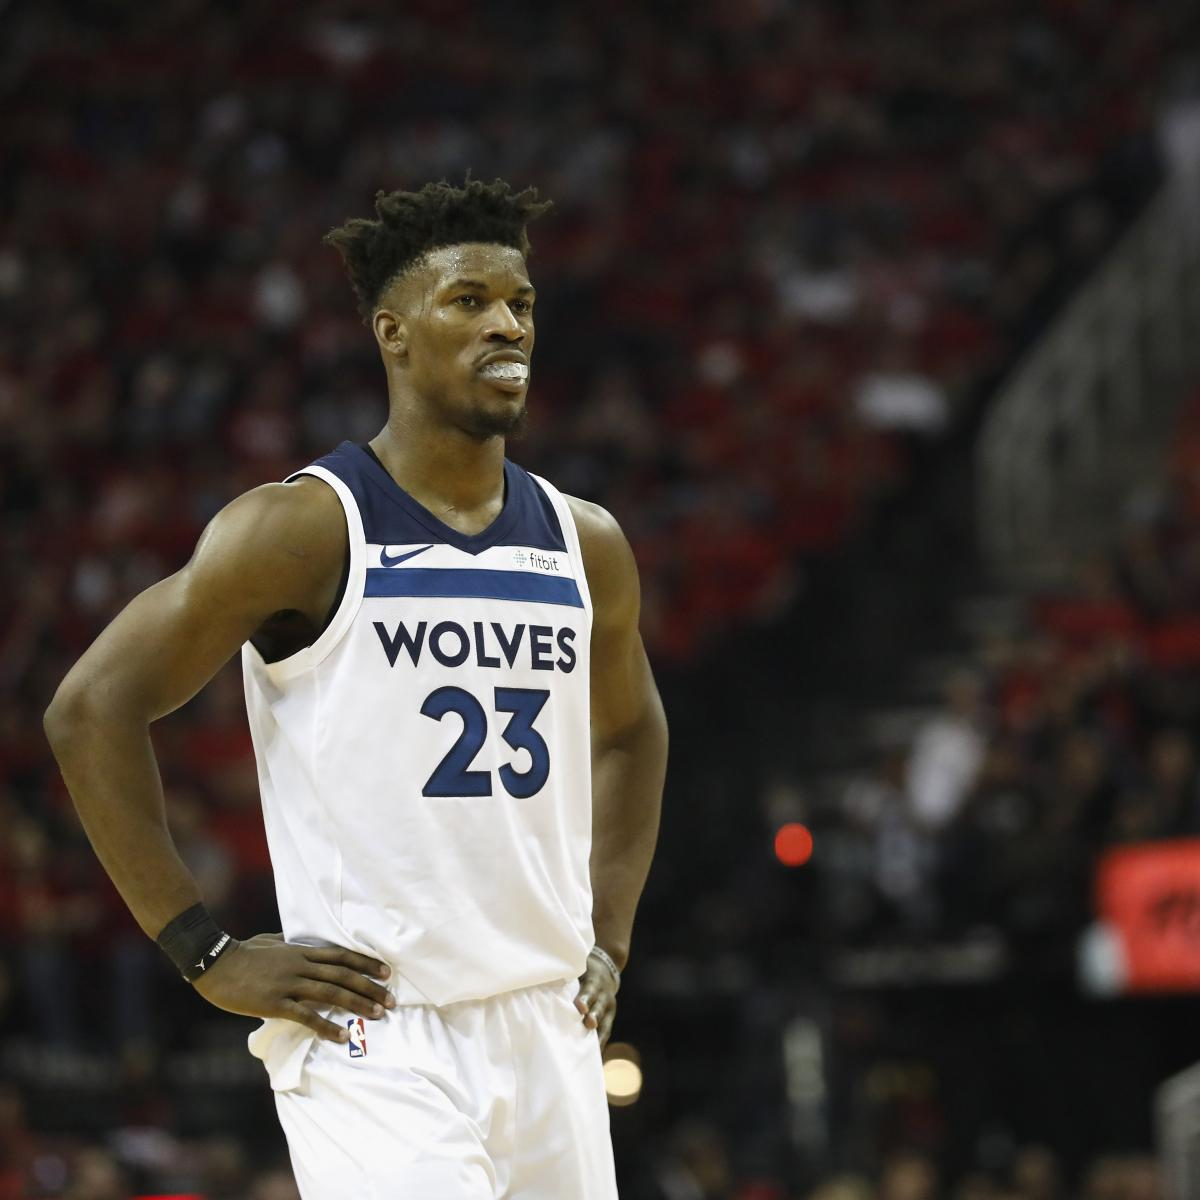 Houston Rockets Where To Watch The Upcoming Match Espn: Is Jimmy Butler The Missing Link To The Houston Rockets